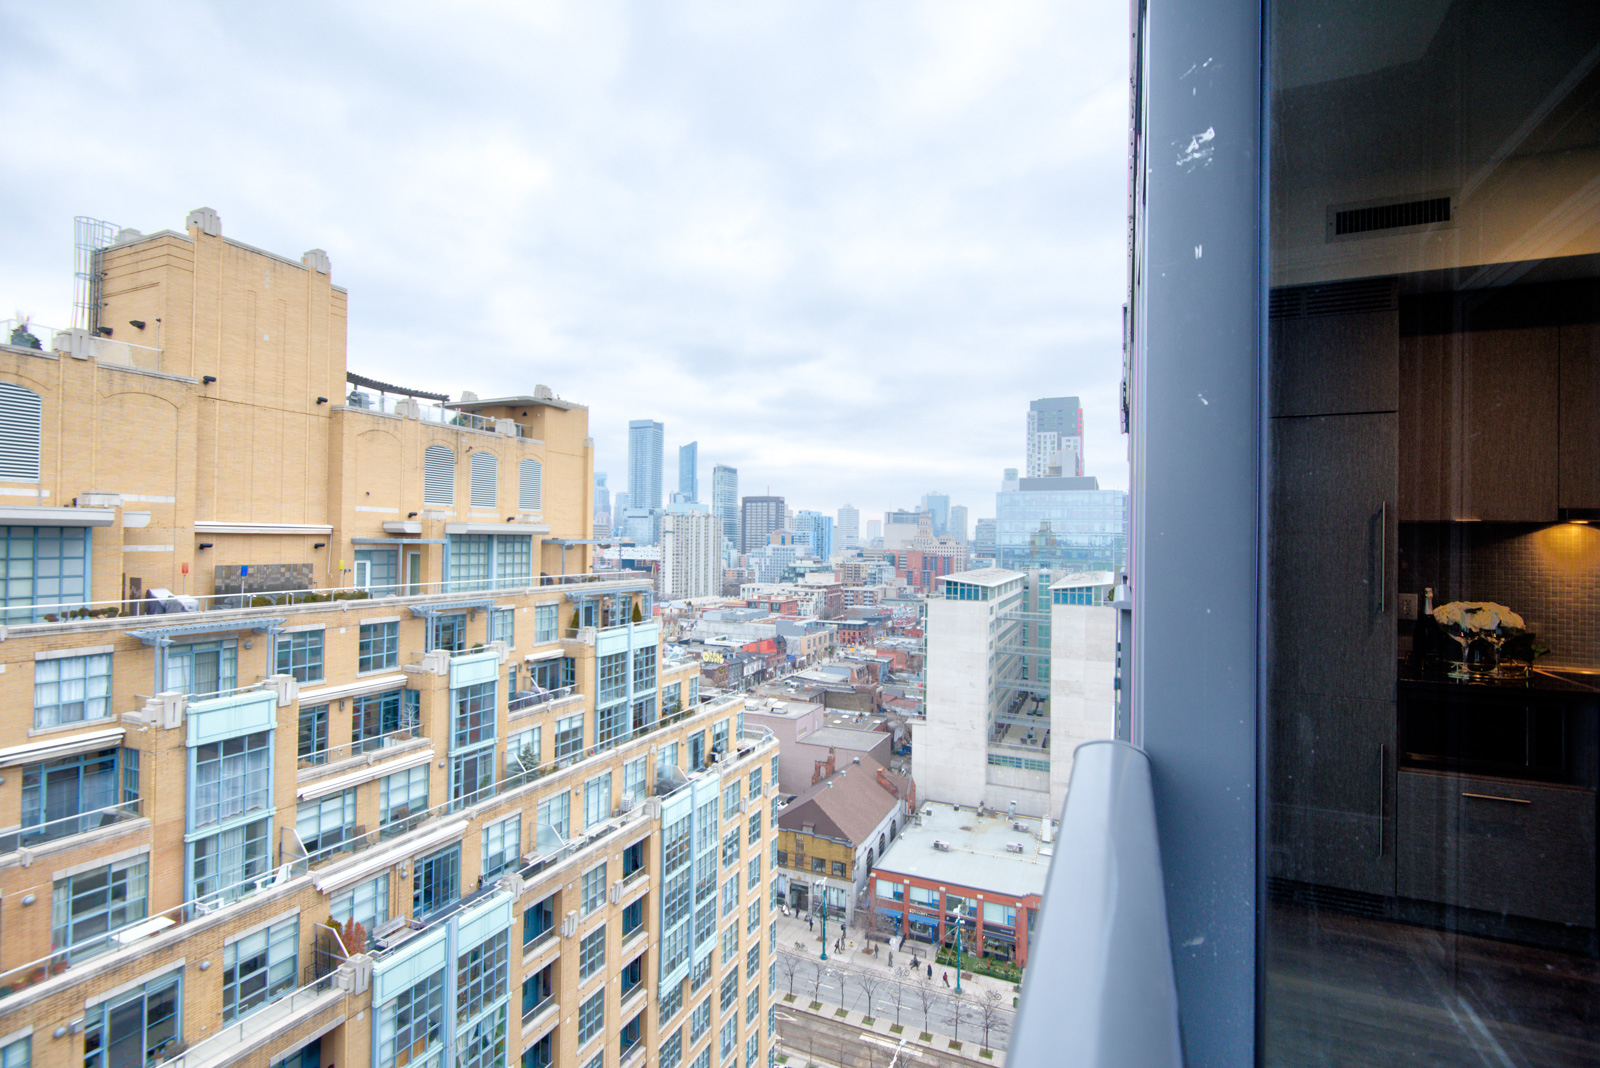 The penthouse suite balcony showing buildings and streets of the Fashion District.